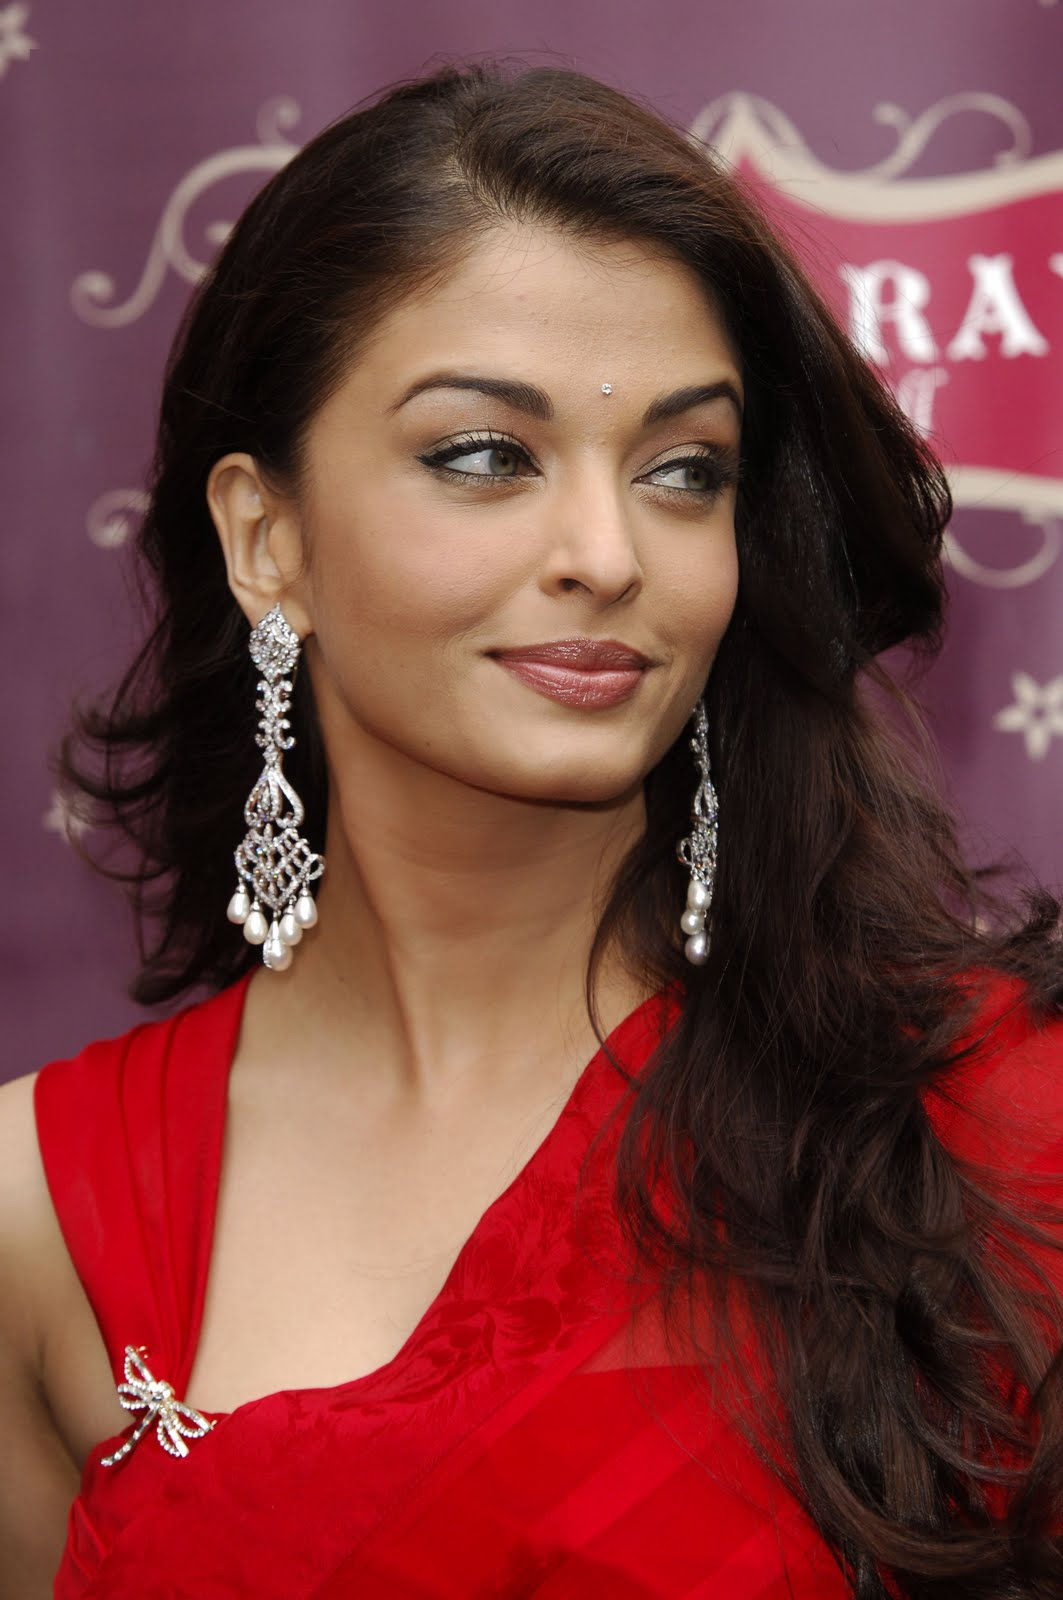 http://3.bp.blogspot.com/_JUw2aRvPUwc/S_pPyheM2XI/AAAAAAAAS40/OeY7usAthEA/s1600/Bollywood+Celebrity+in+red+dress+looking+hot.jpg